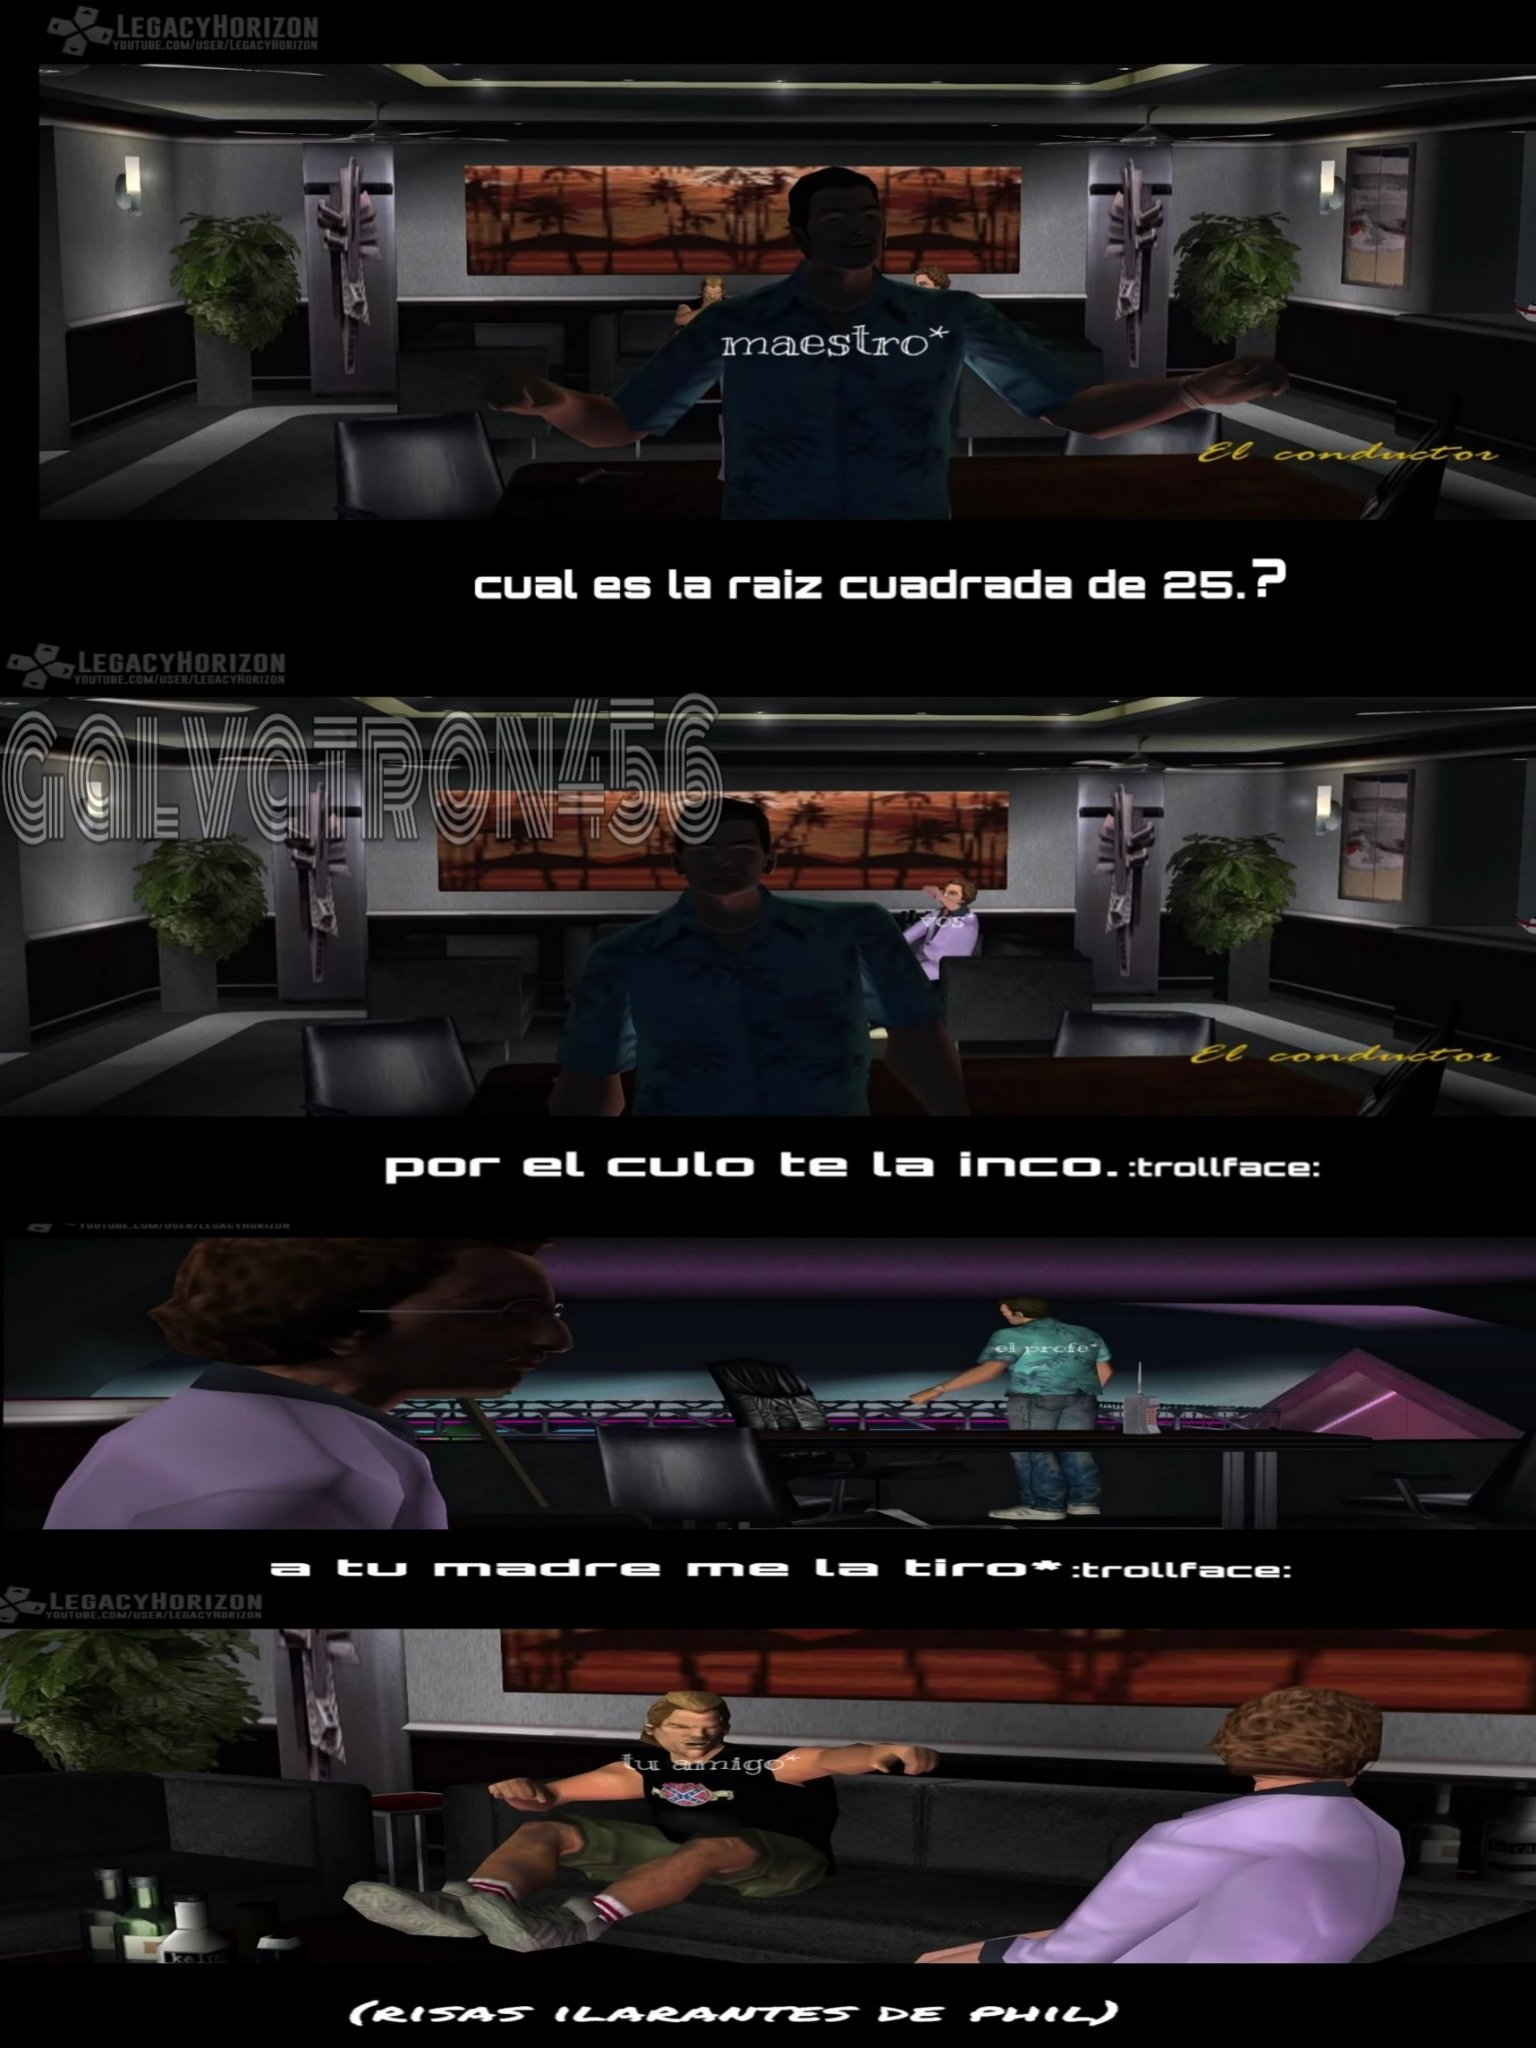 Vice city - meme